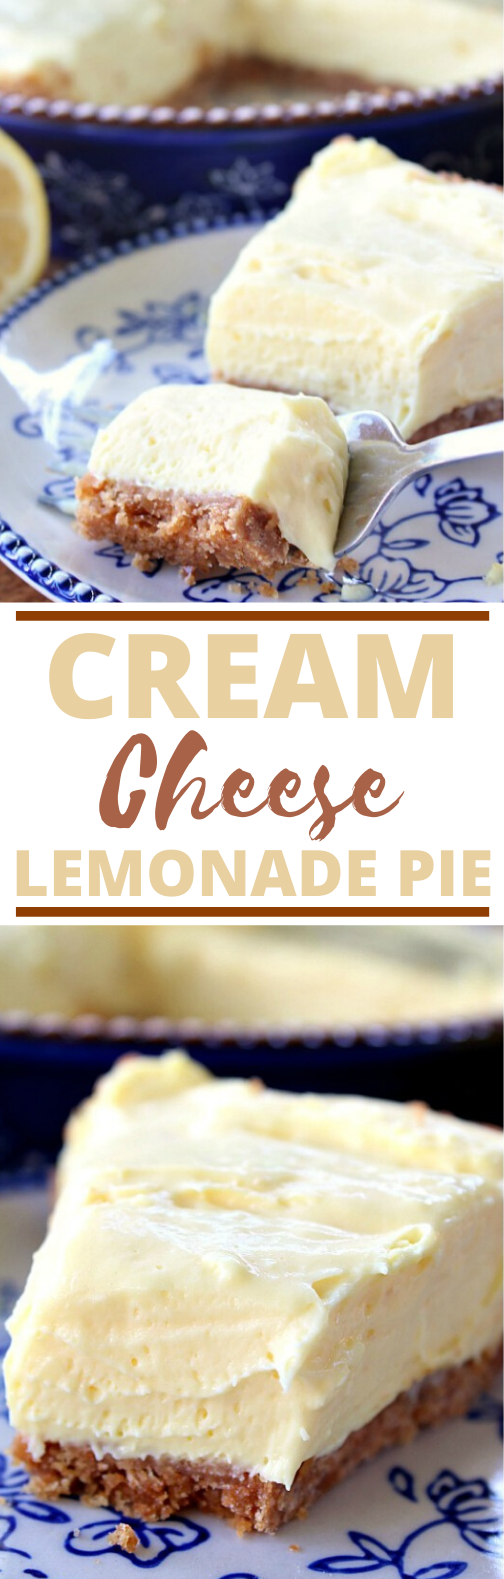 Cream Cheese Lemonade Pie #desserts #easy #pie #cheesecake #baking